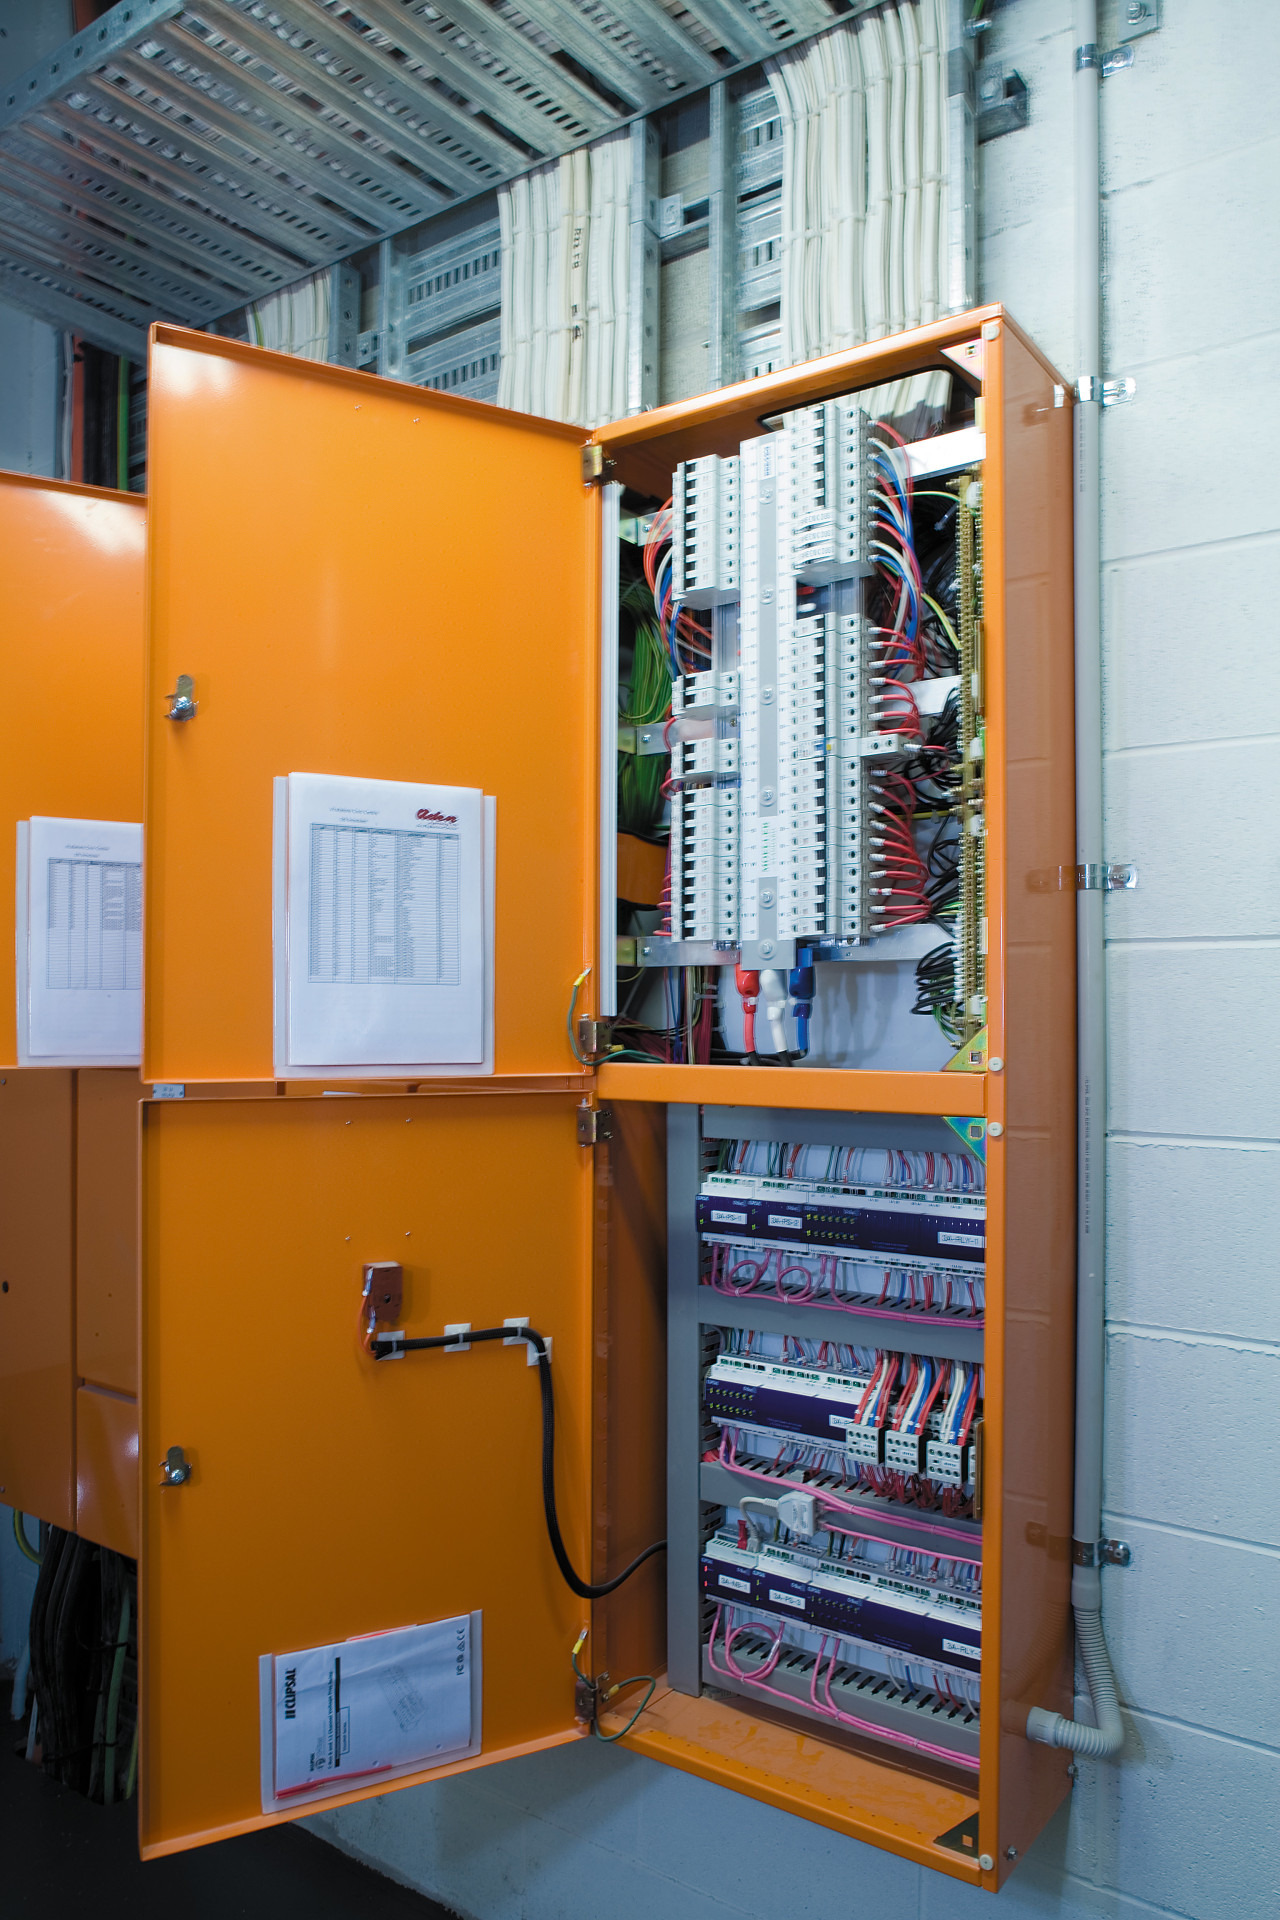 A viewof the electrical technology. electrical wiring, machine, product, shelving